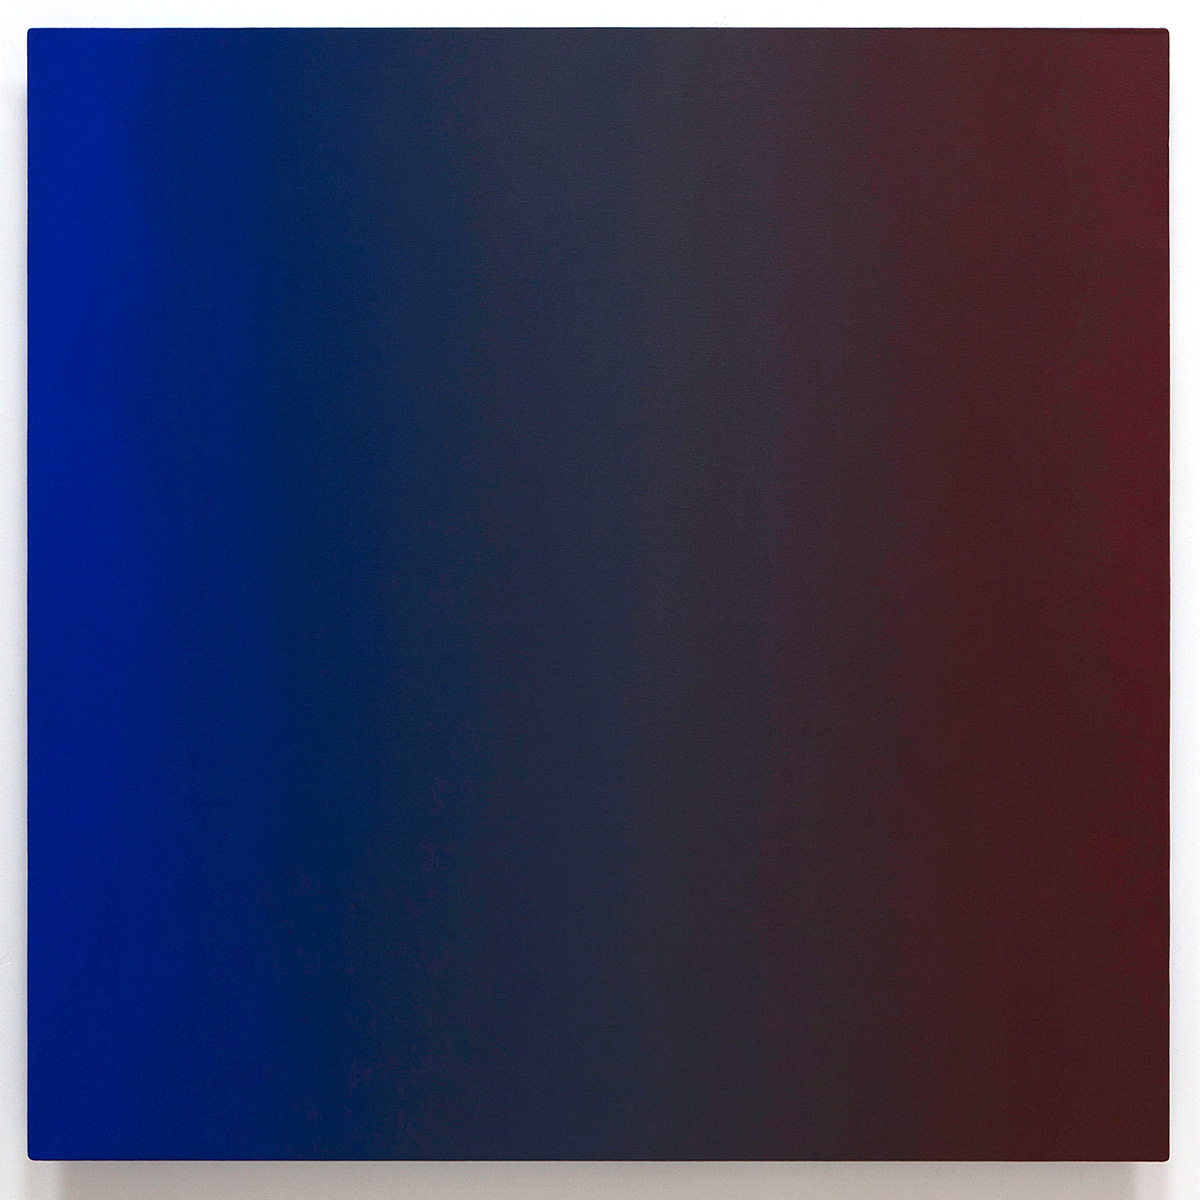 War Paint (Red Blue), Primary Red Blue Series, 2011, oil on canvas on custom beveled stretcher, 48 x 48 in. (122 x 122 cm.)